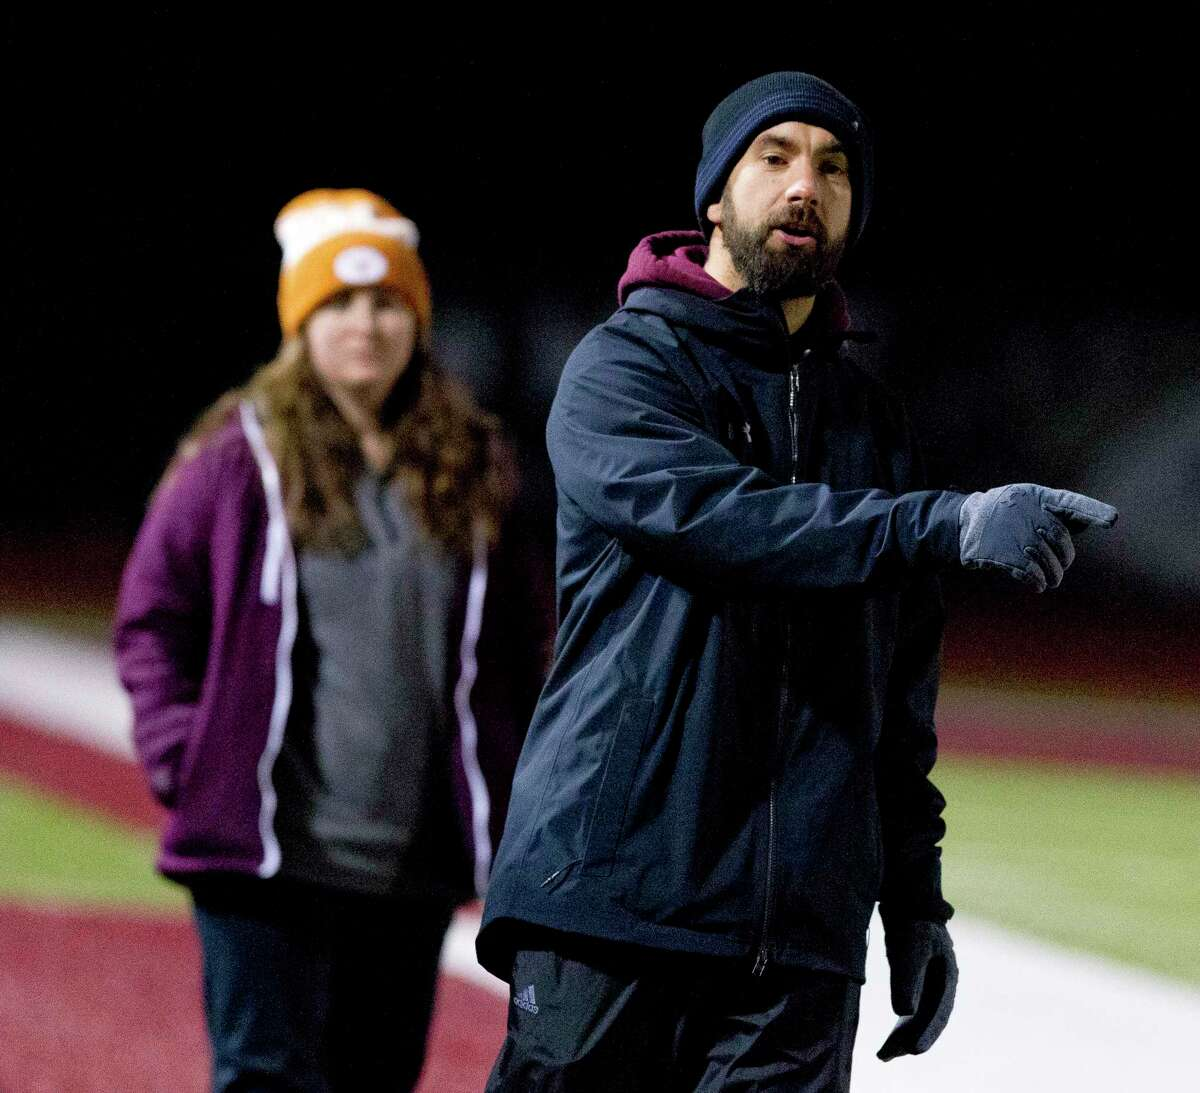 Magnolia West head coach Christian Boehm is seen during the second period of a District 19-5A high school soccer match at Magnolia West High School, Tuesday, March 5, 2019, in Magnolia.